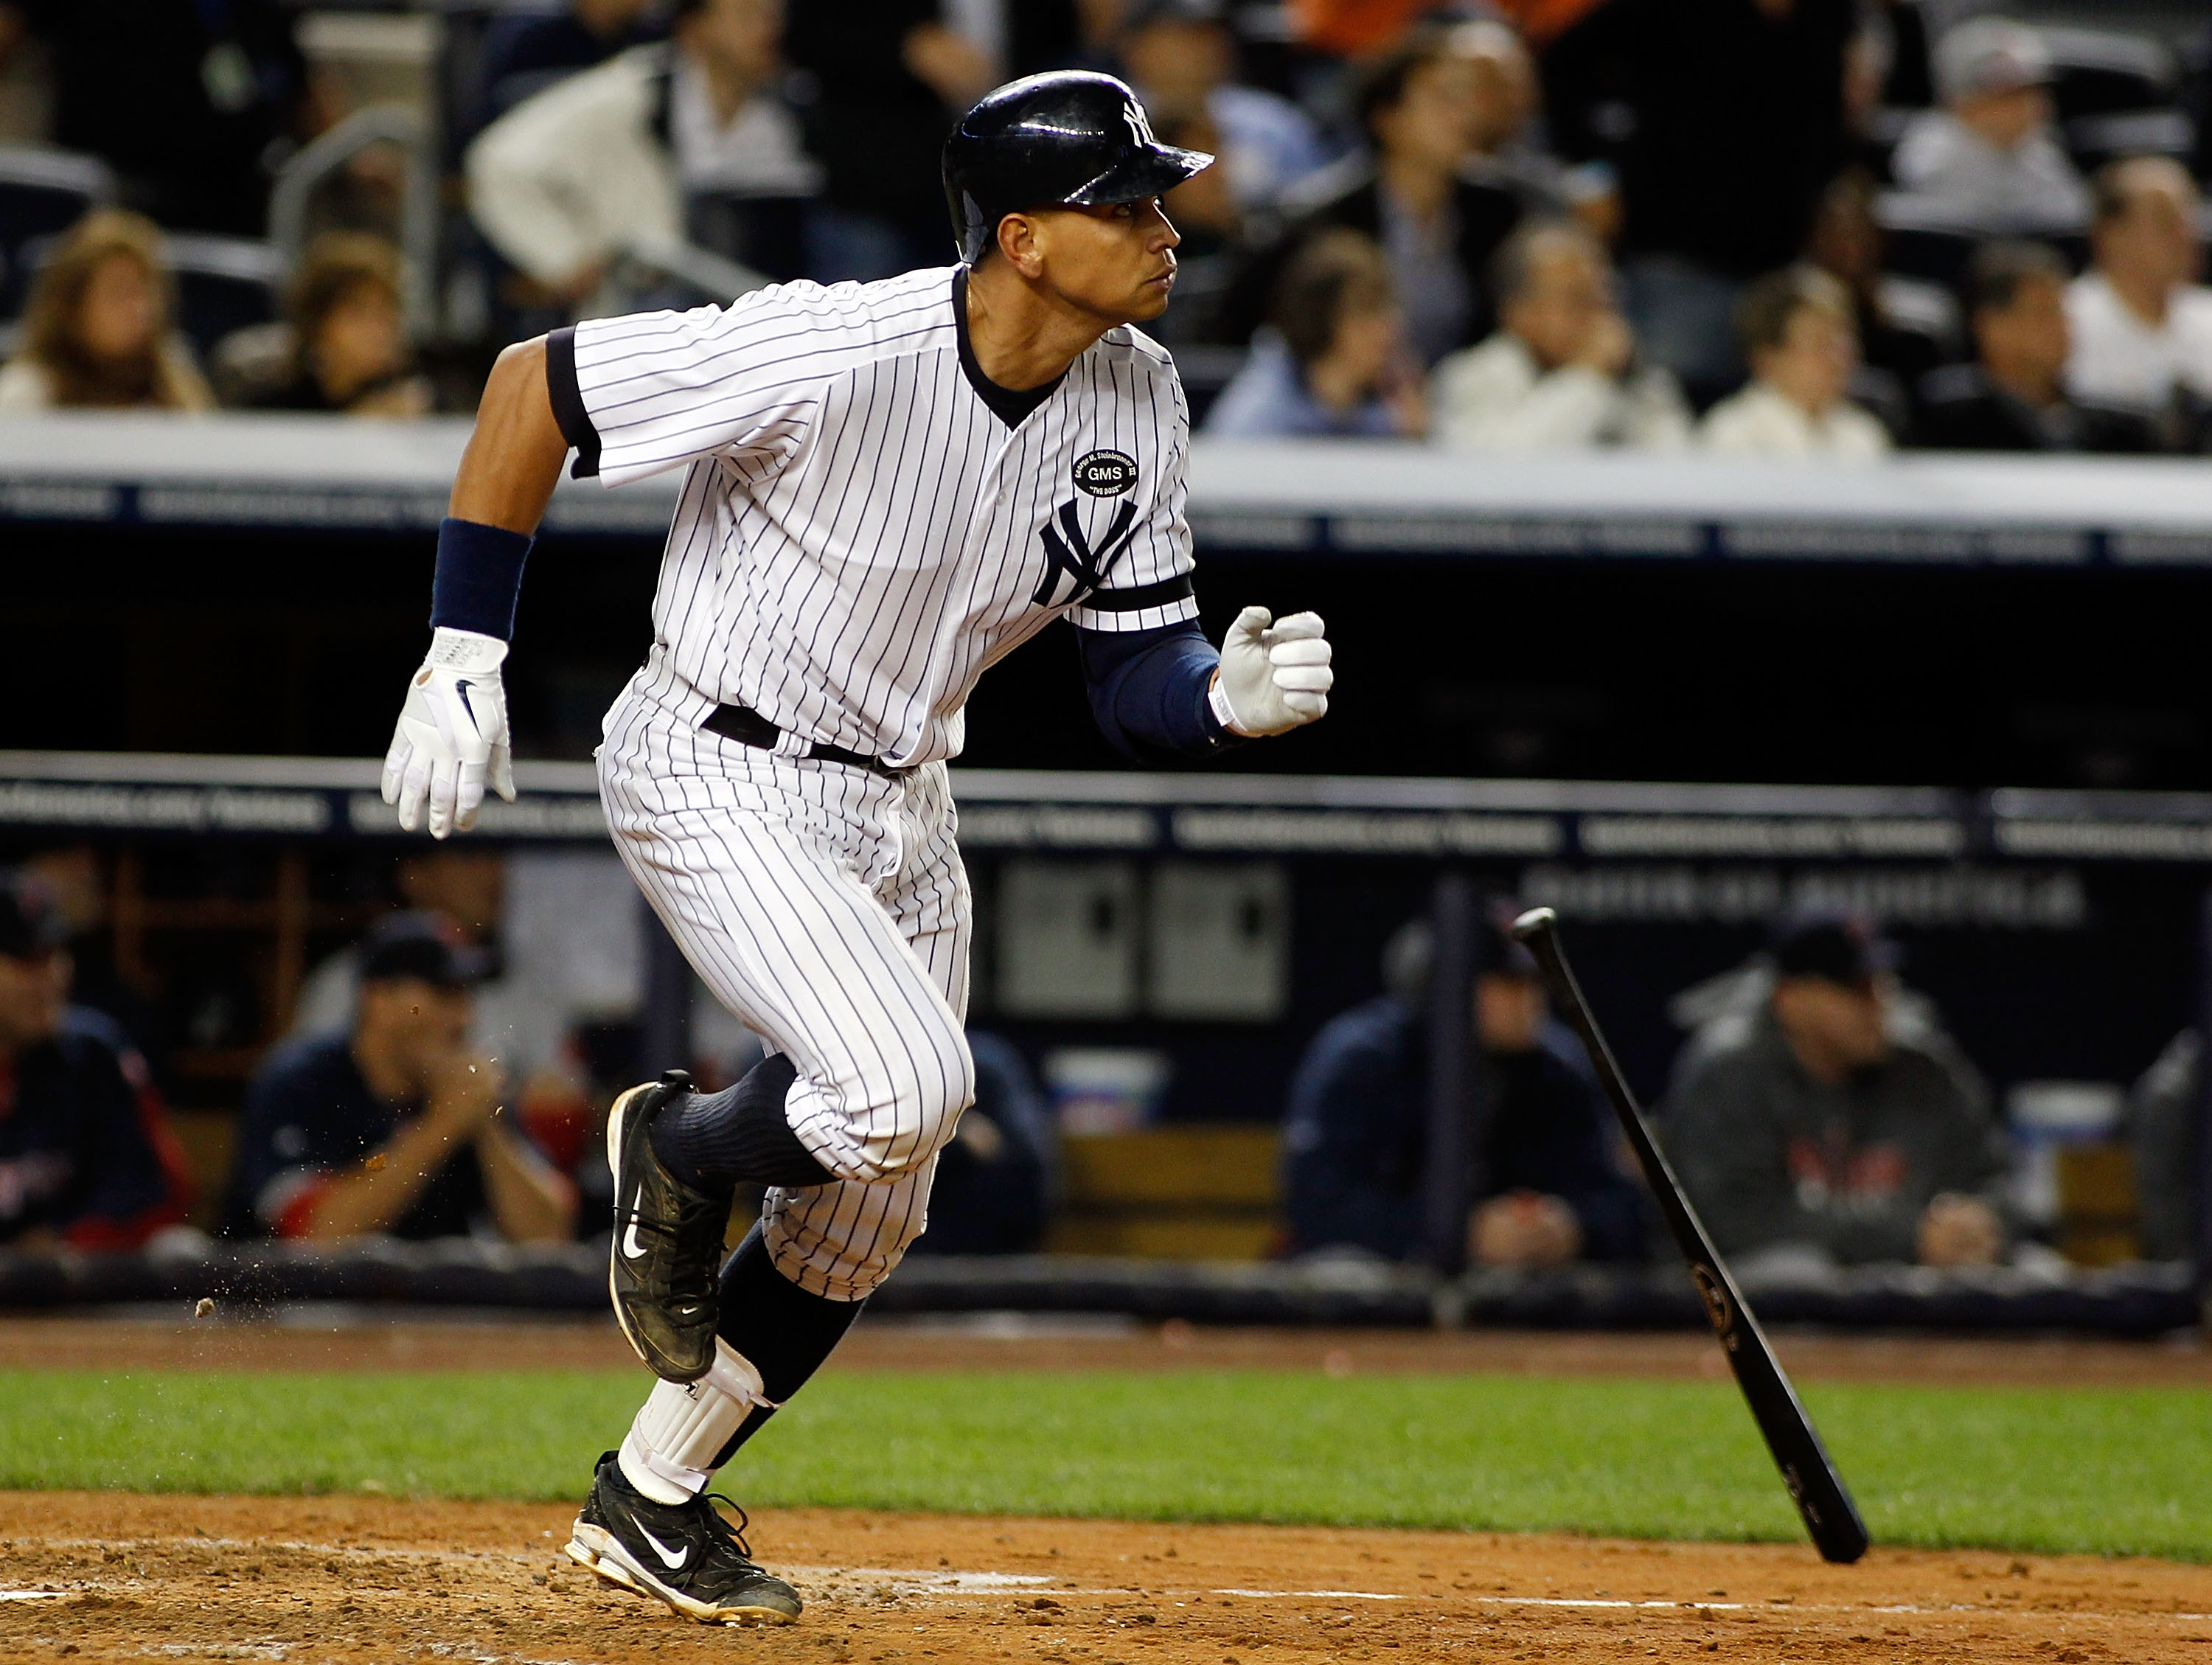 NEW YORK - SEPTEMBER 26:  Alex Rodriguez #13 of the New York Yankees hits a two run homerun in the seventh-inning against the Boston Red Sox on September 26, 2010 at Yankee Stadium in the Bronx borough of New York City.  (Photo by Mike Stobe/Getty Images)